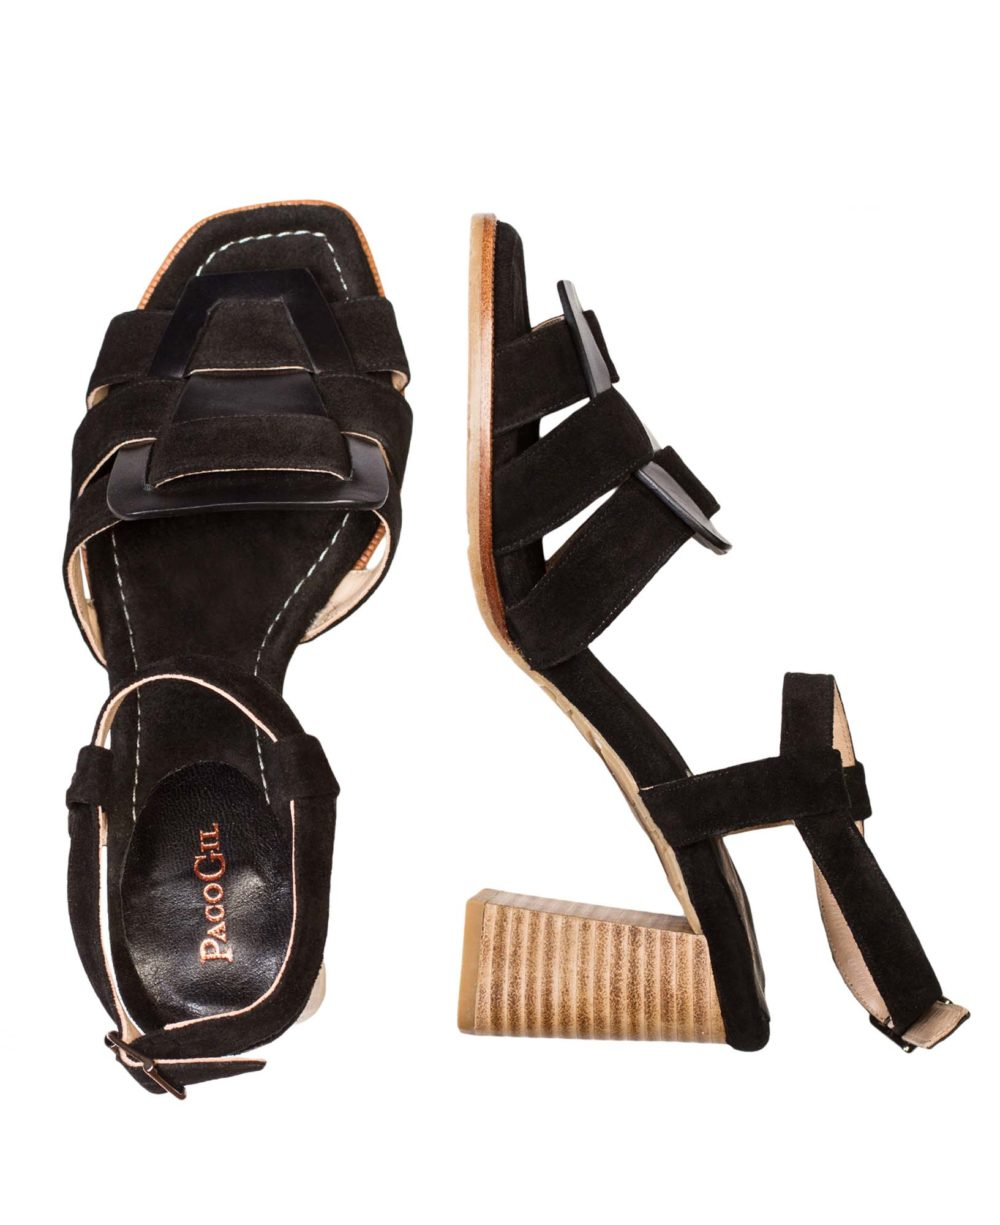 P-3931 Black Madison Velour Leather Sandals by Paco Gil